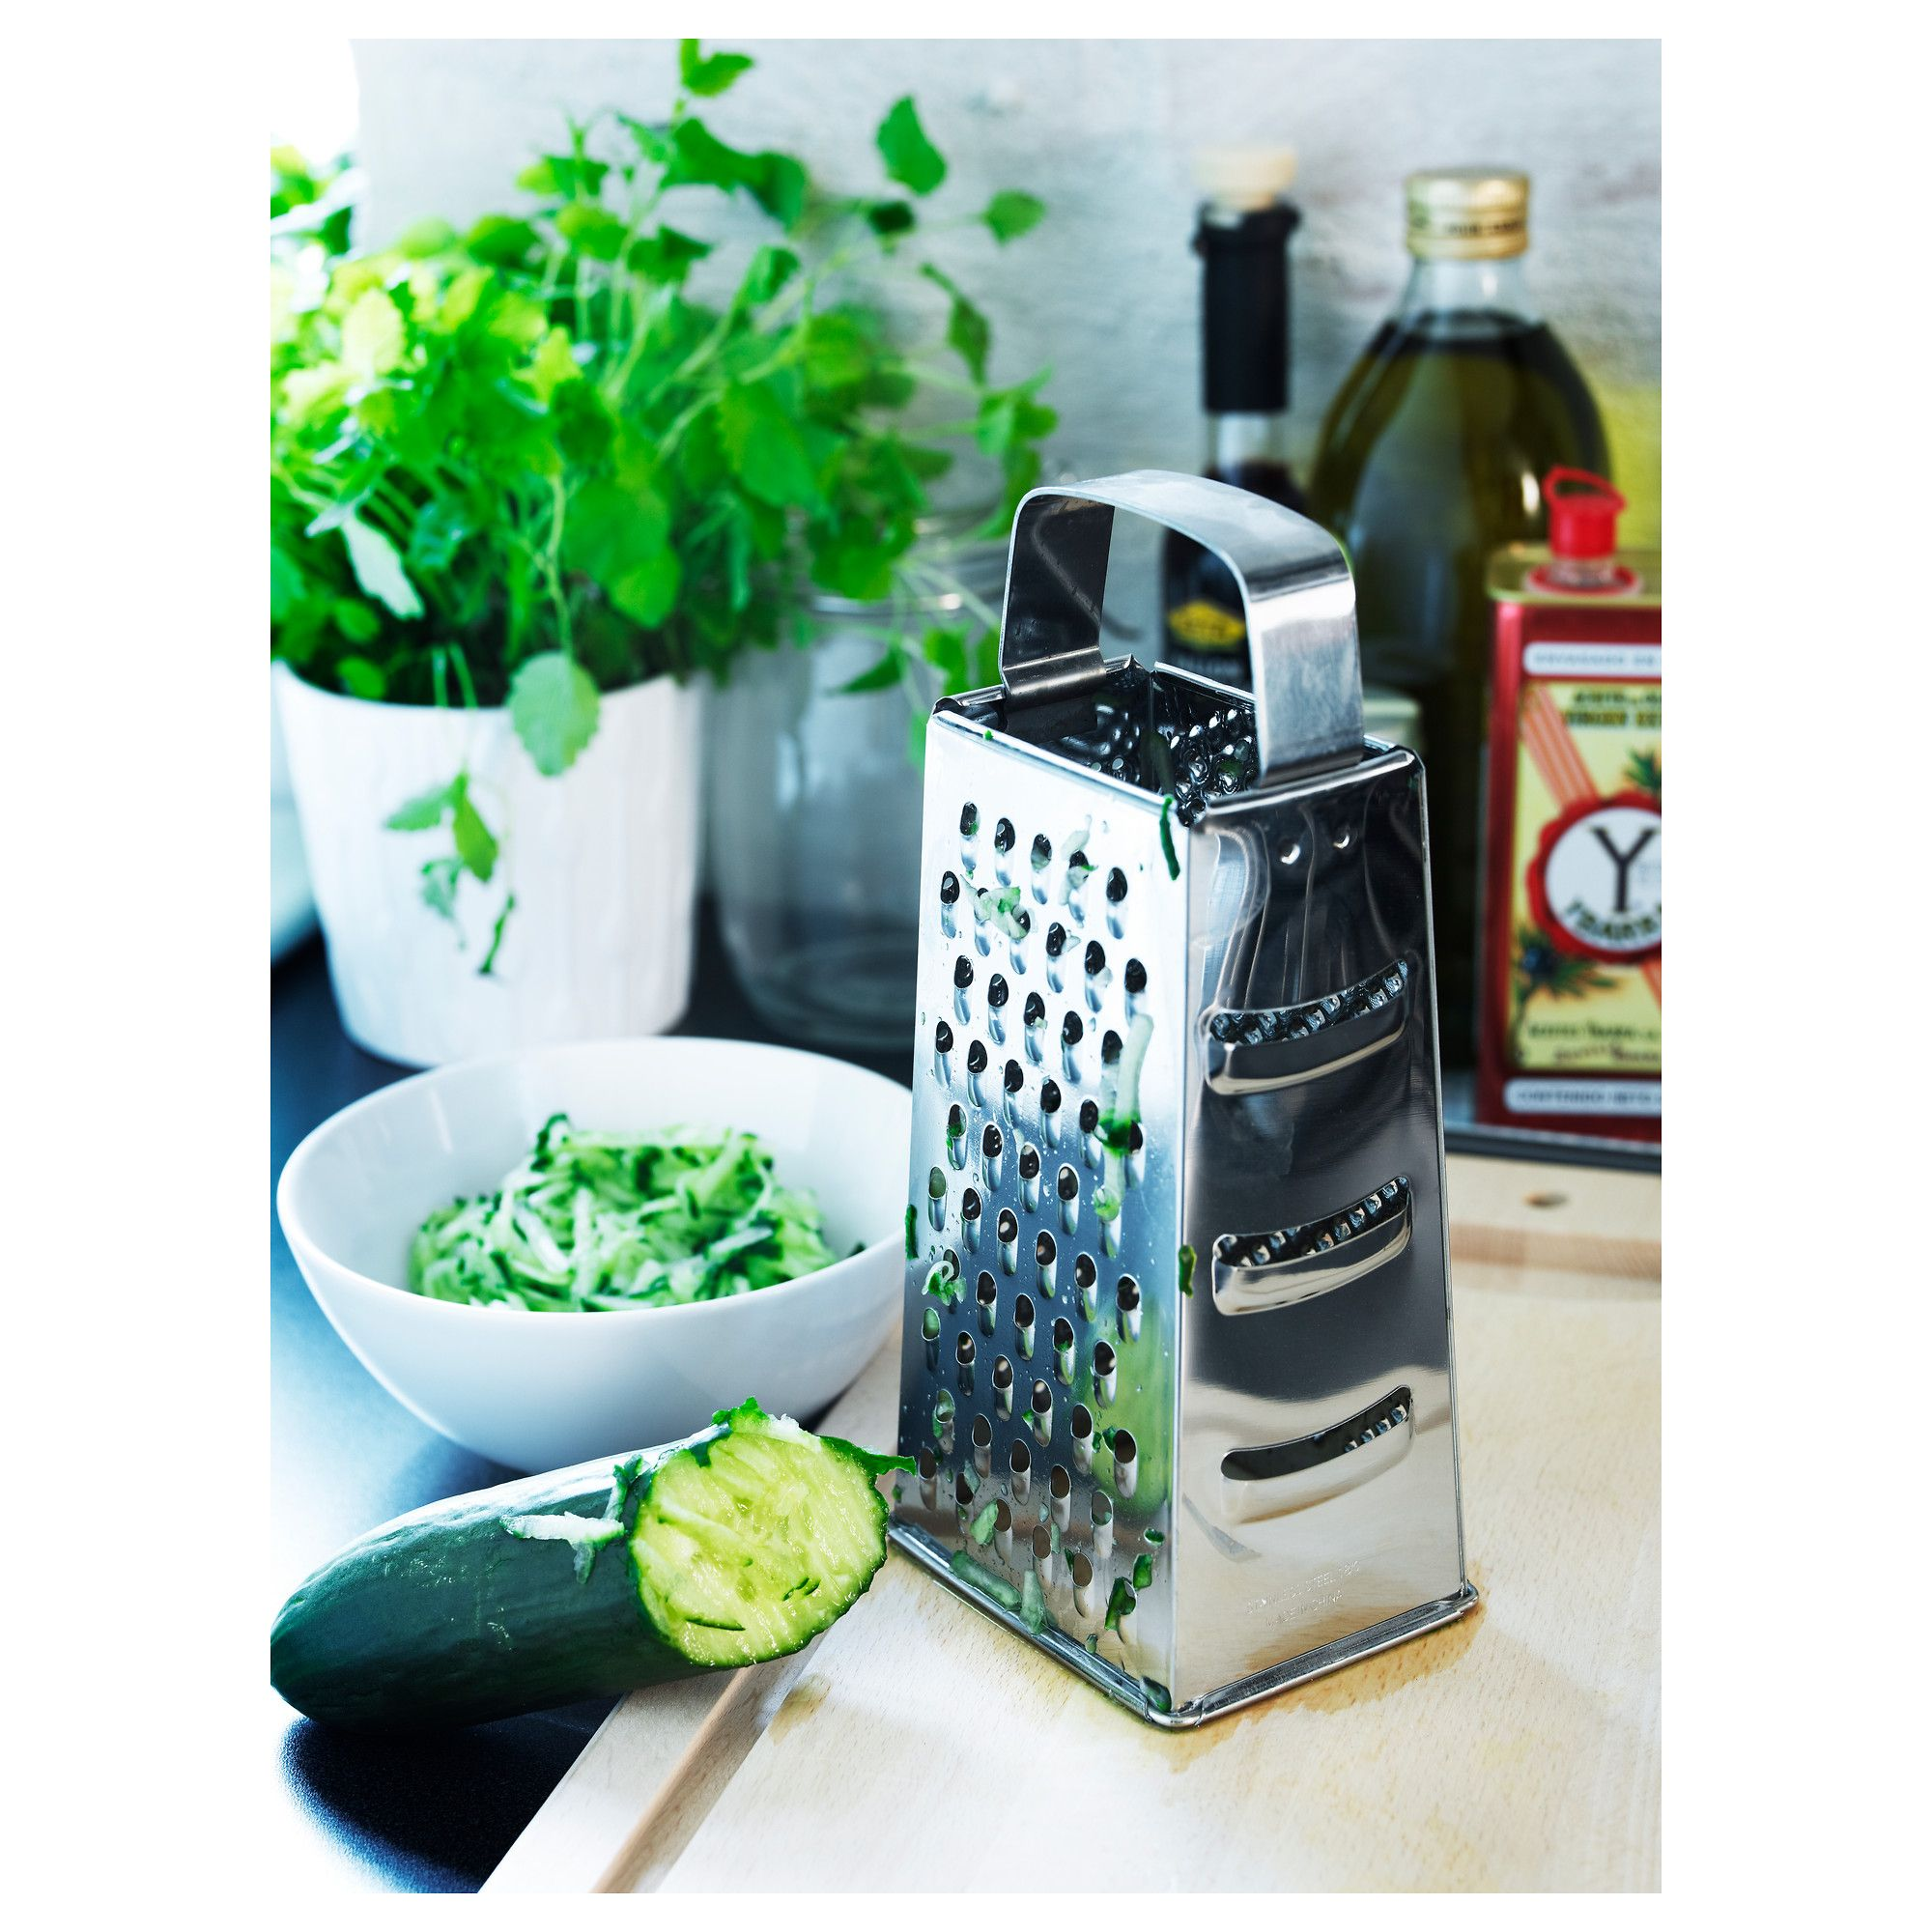 Ikea Usa All Products: IKEA - IDEALISK Grater Stainless Steel In 2019